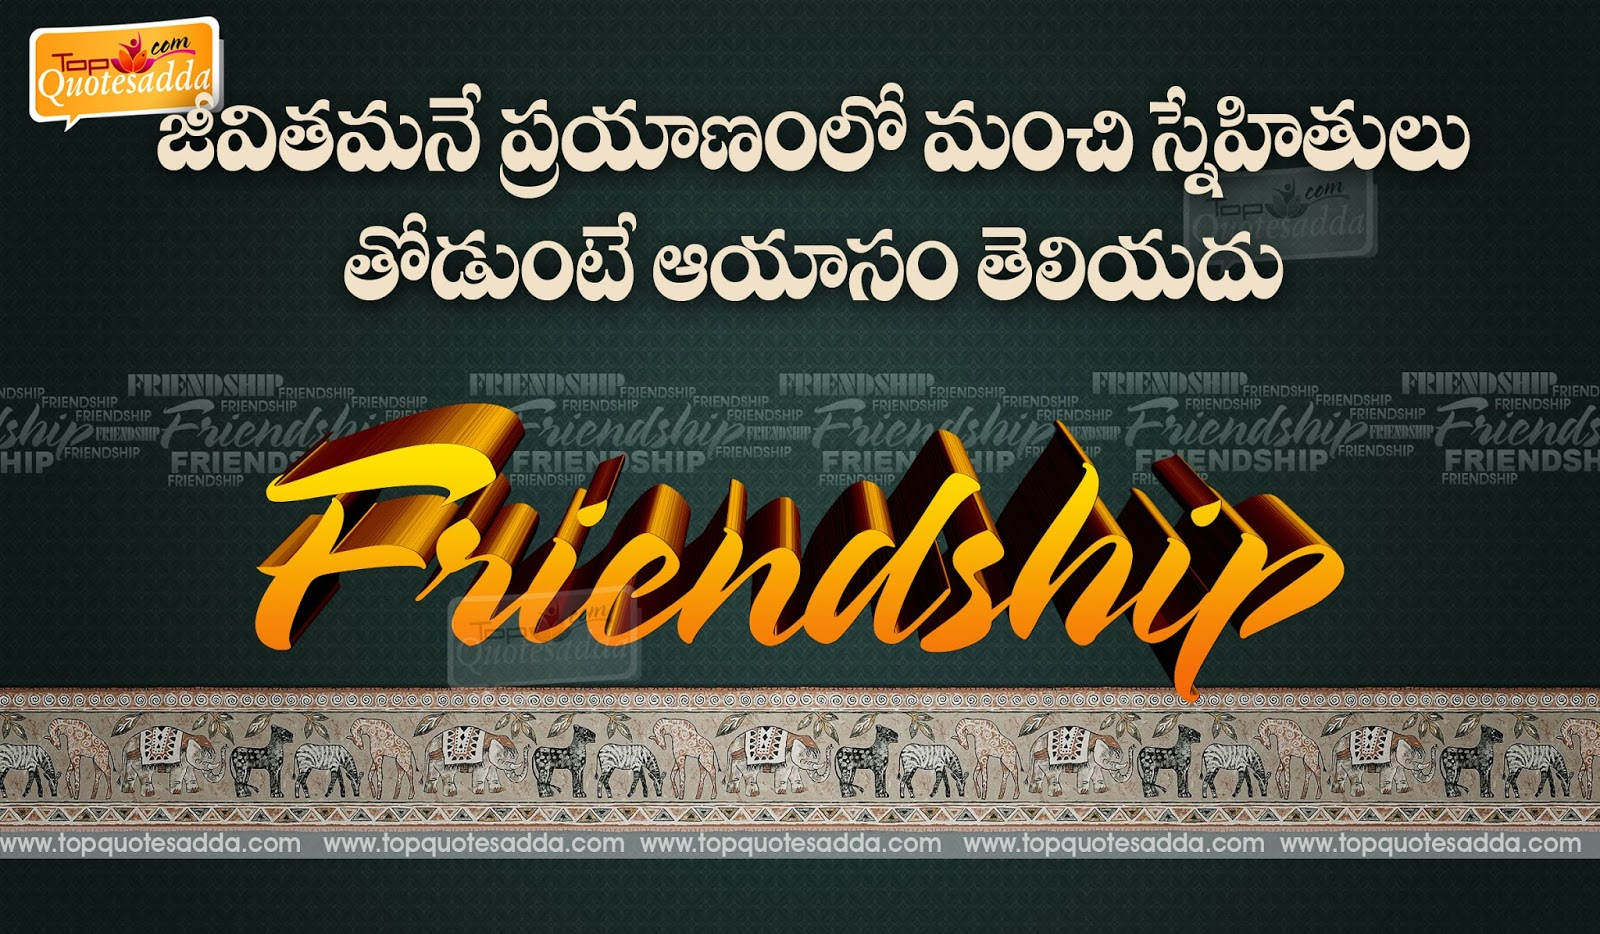 Motivational Quotes About Friendship Friendship Quotes Images In Telugu